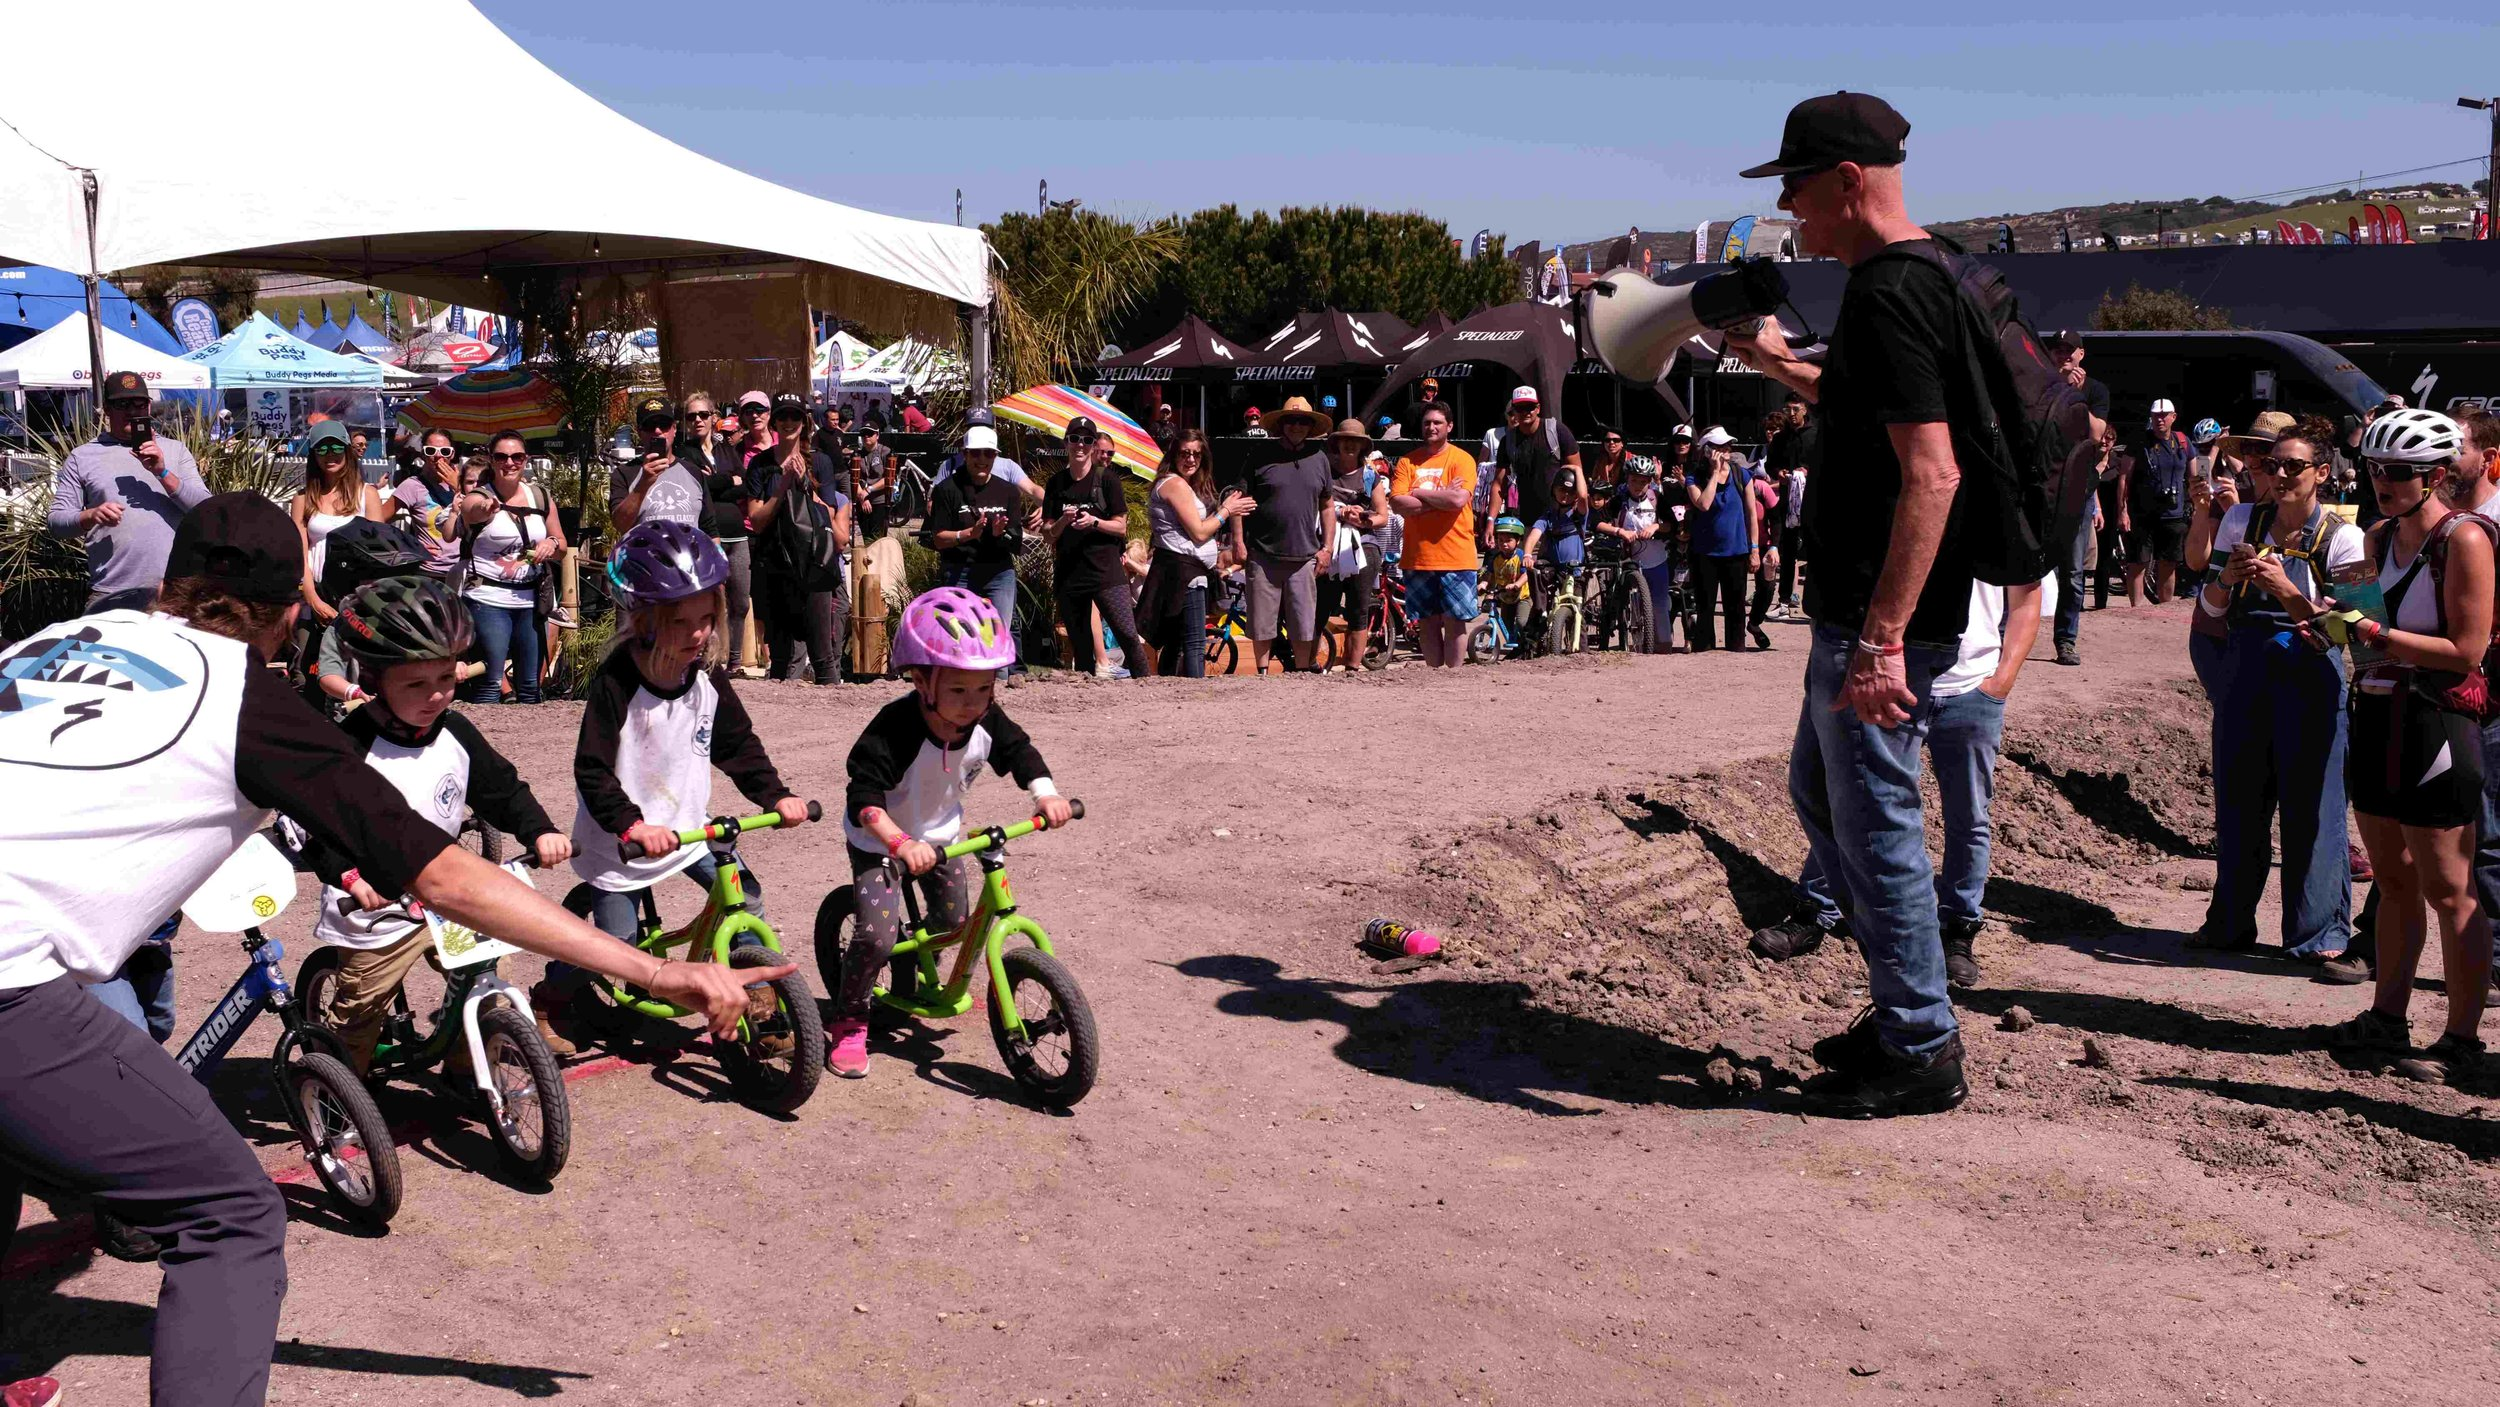 Mike Sinyard, Founder and President of Specialized Calling the Kids Race and Spotting Future Talent!